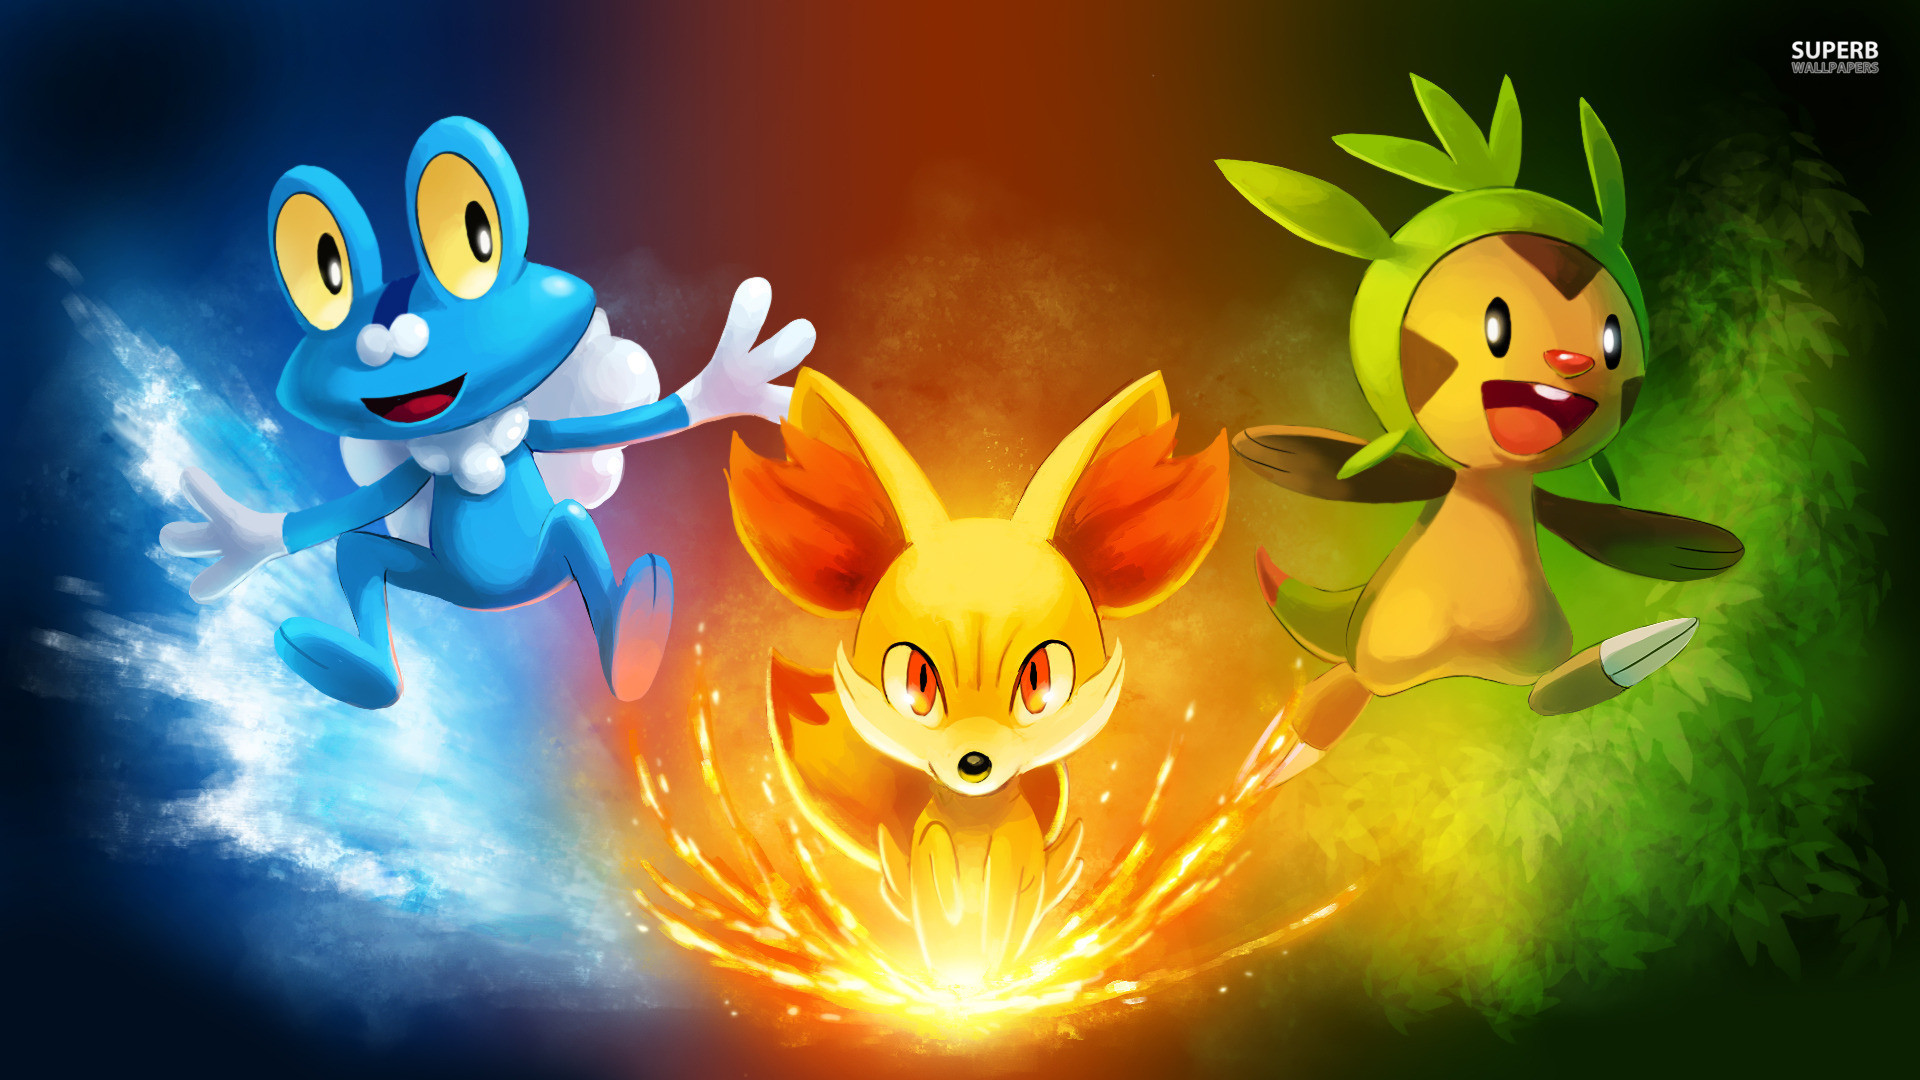 1920x1080 Pokemon X And Y Wallpaper Desktop